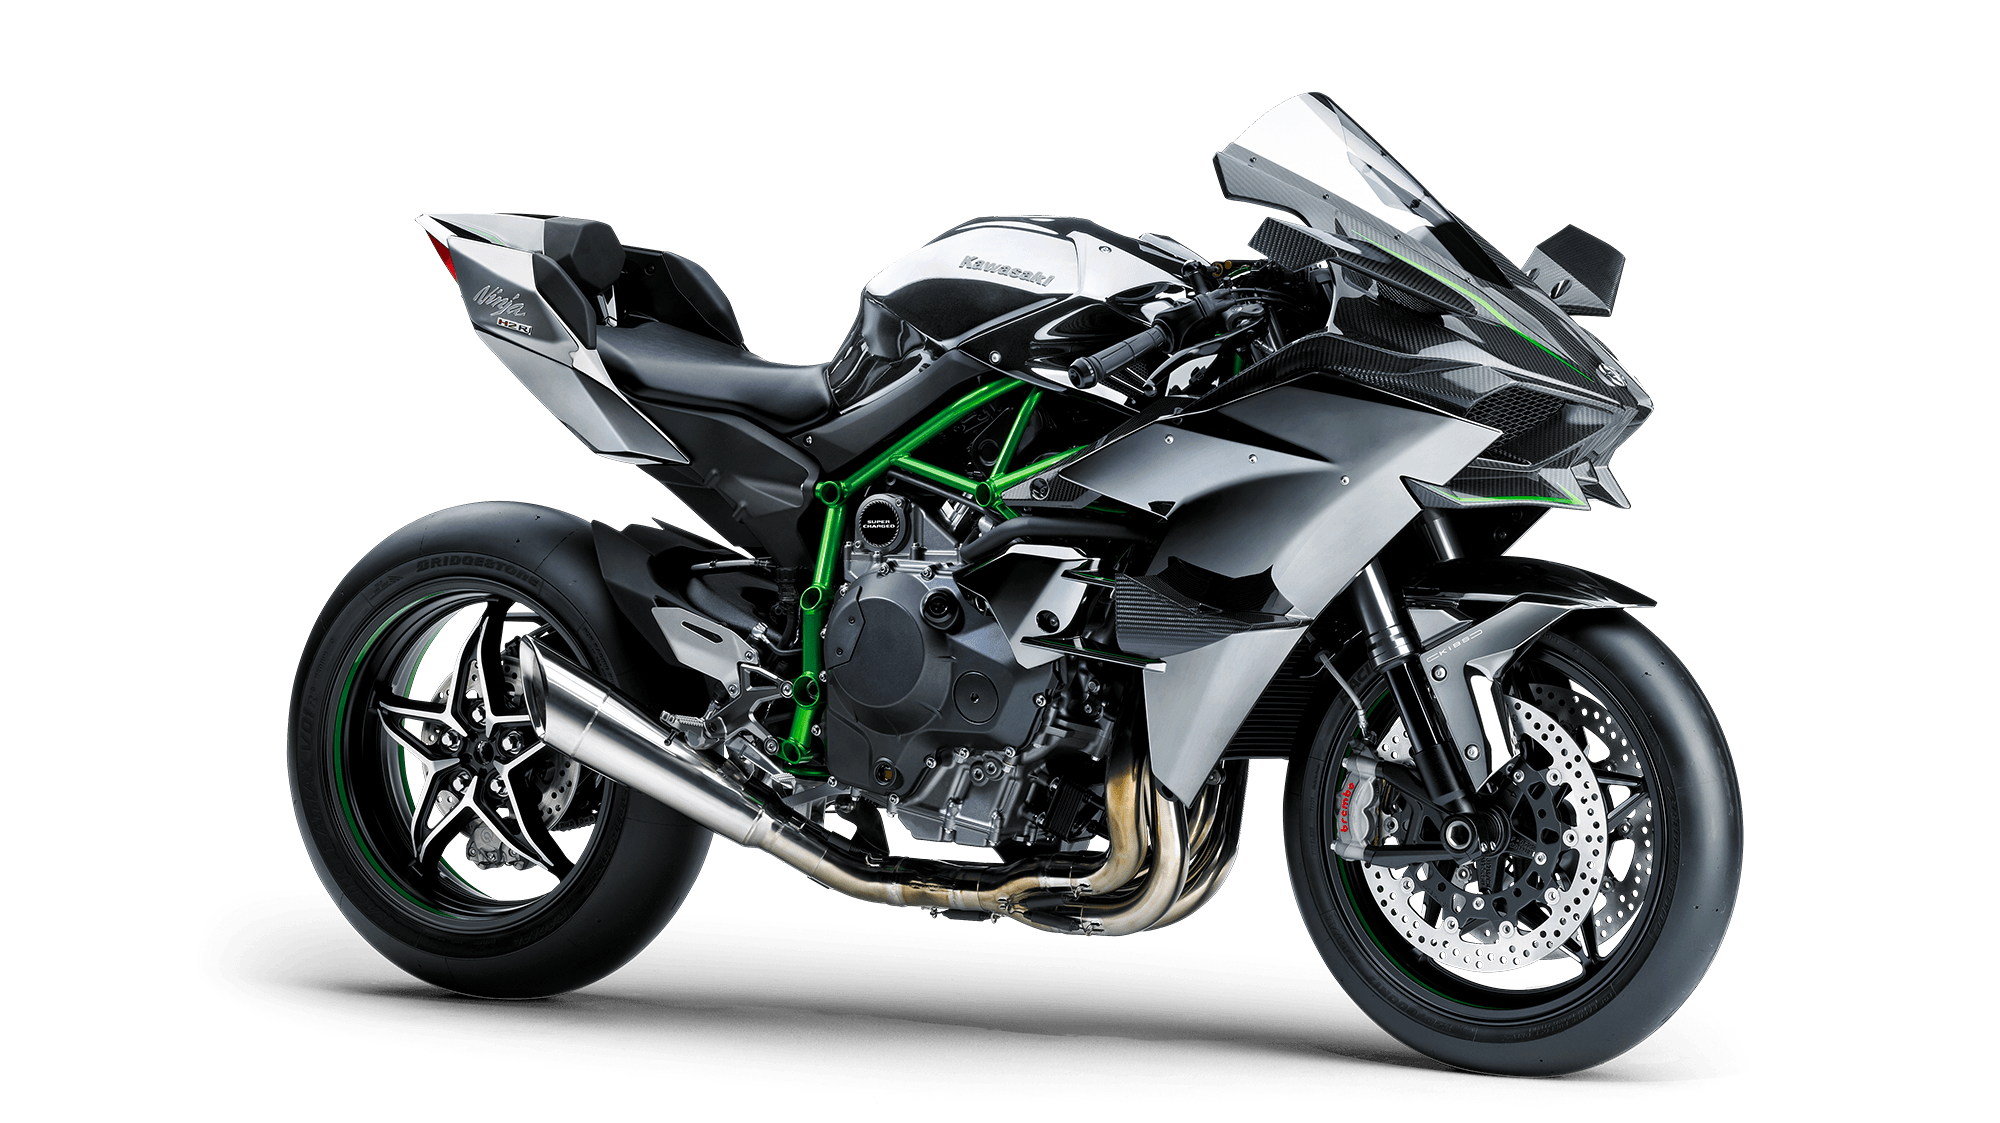 Kawasaki Zx10r Couk Bike Forum All Welcome Not Just Zx10r Owners